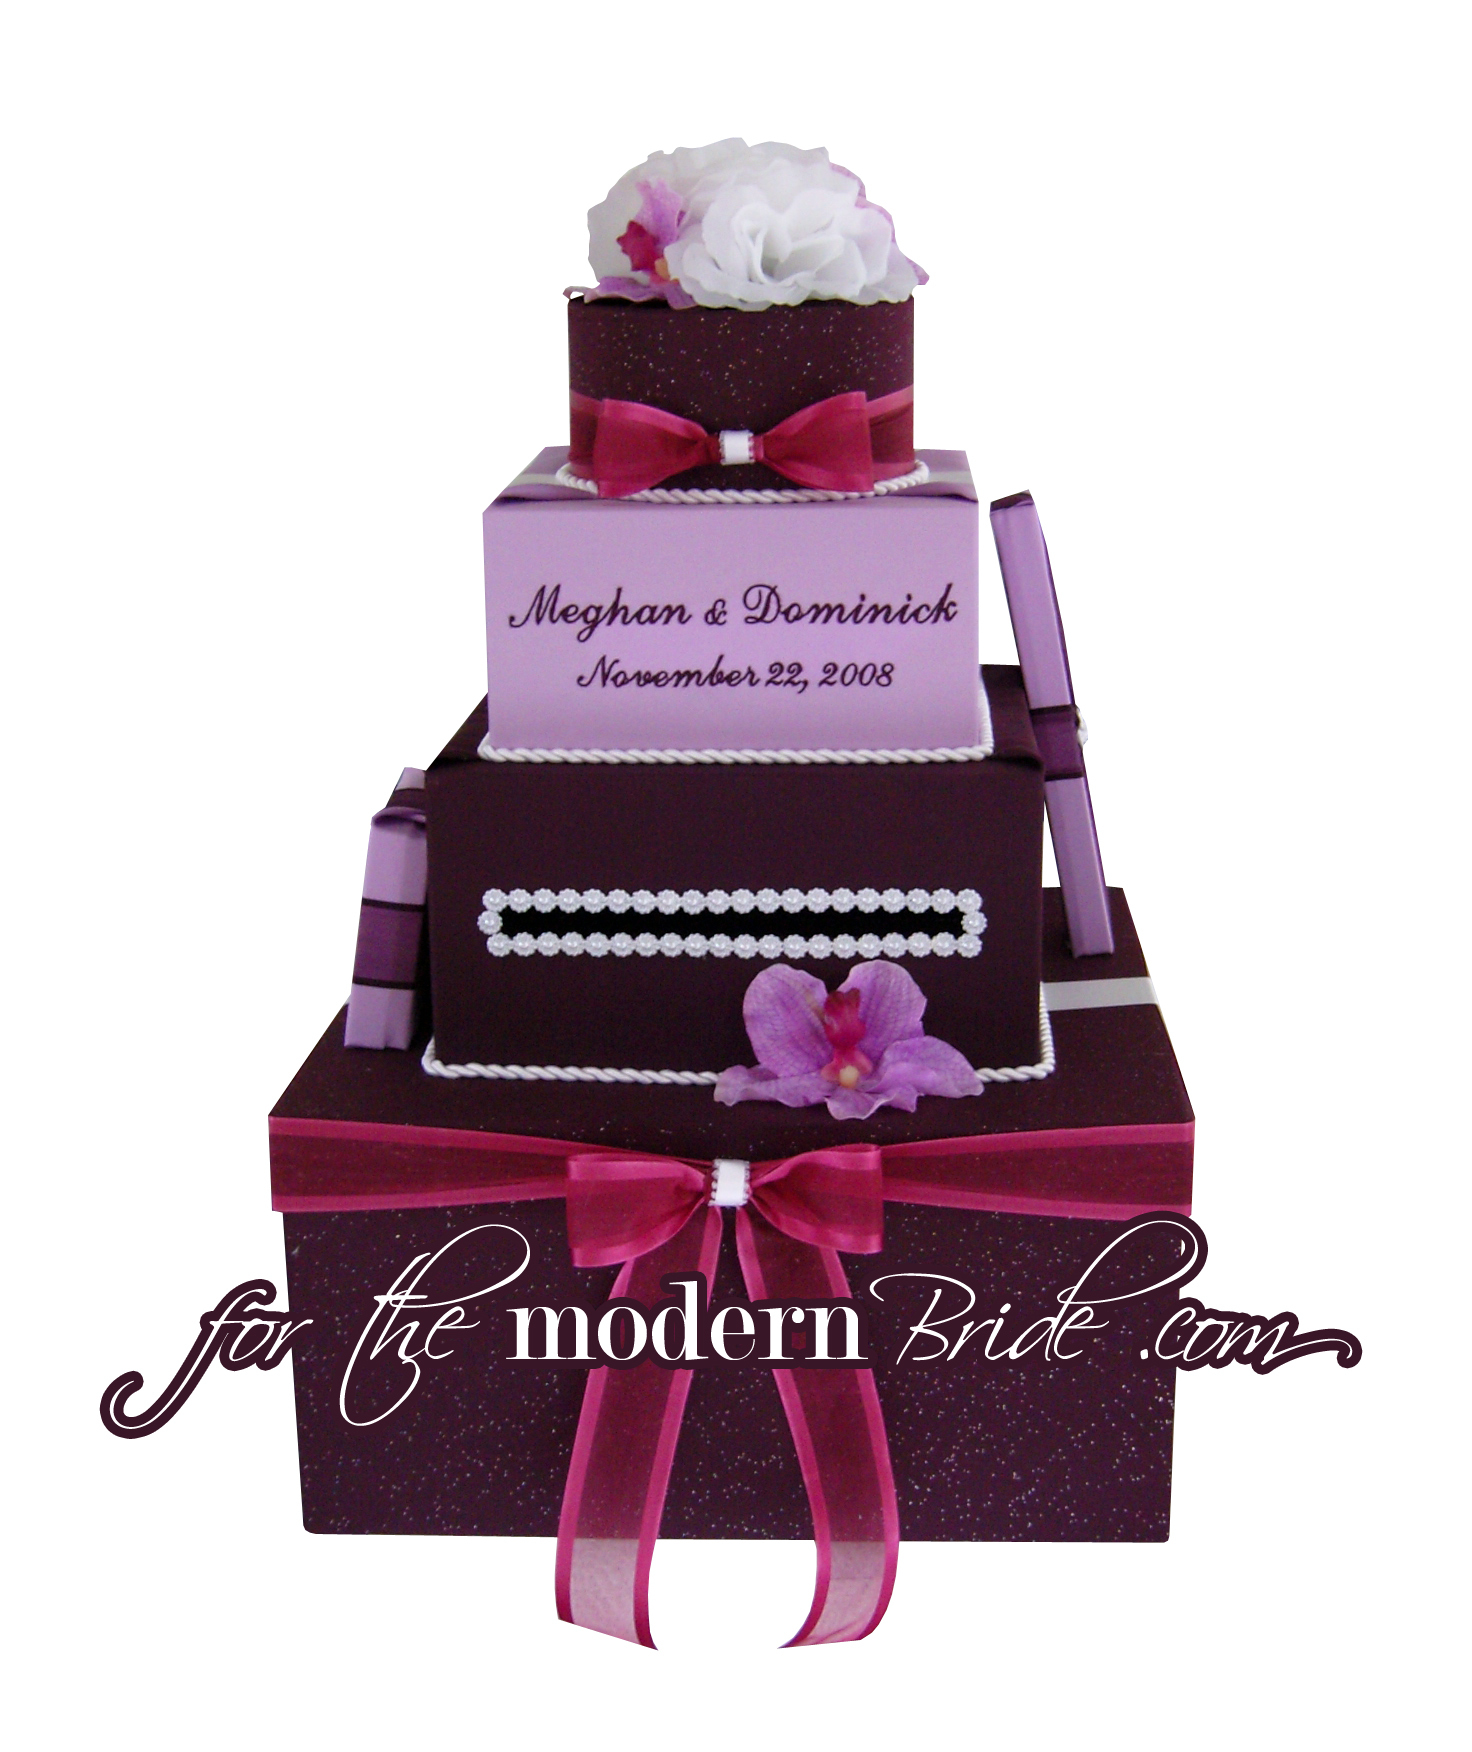 Reception, Flowers & Decor, Wedding, Box, Card, Money, Holder, For the modern bride